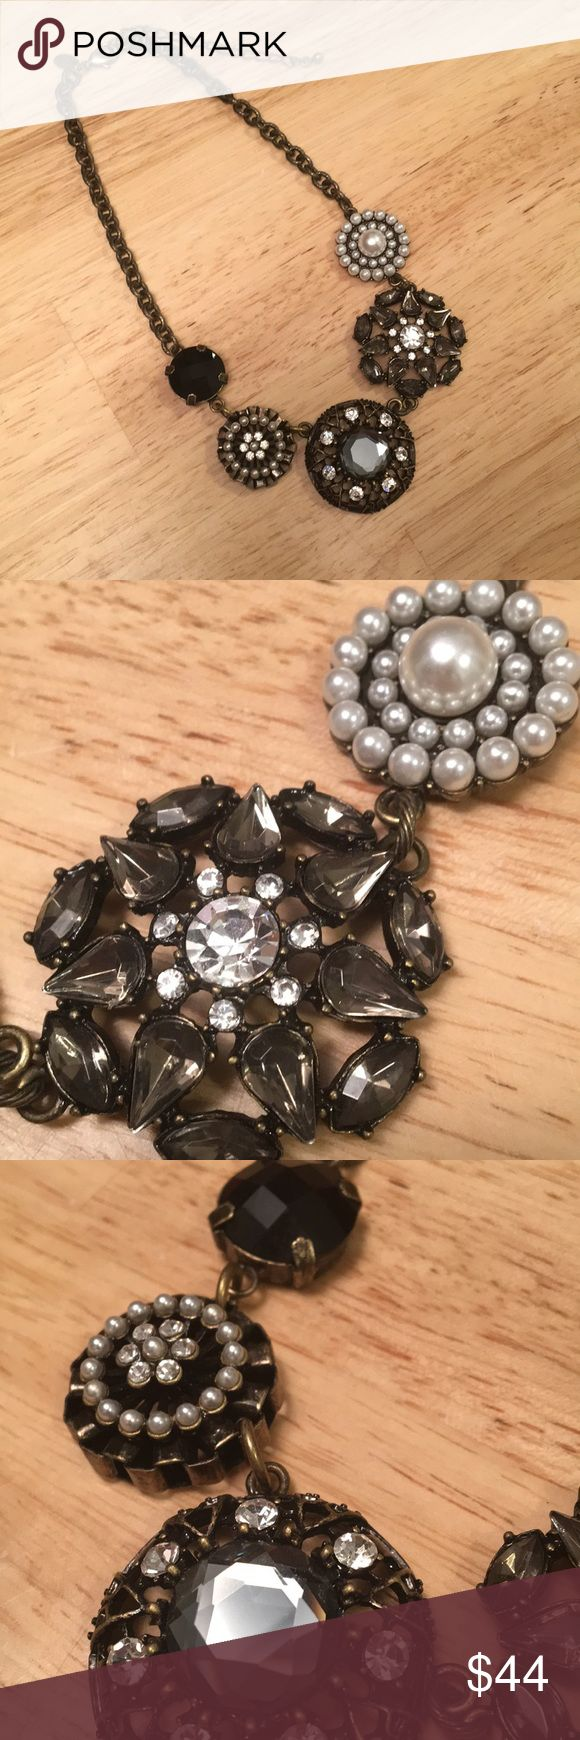 """Lia Sophia Necklace Lia Sophia Curio is adjustable from 9""""-12"""" drop. EUC. Bronze with a mix of pearls, white black and grey sparkle. A classic look. Lia Sophia Jewelry Necklaces"""